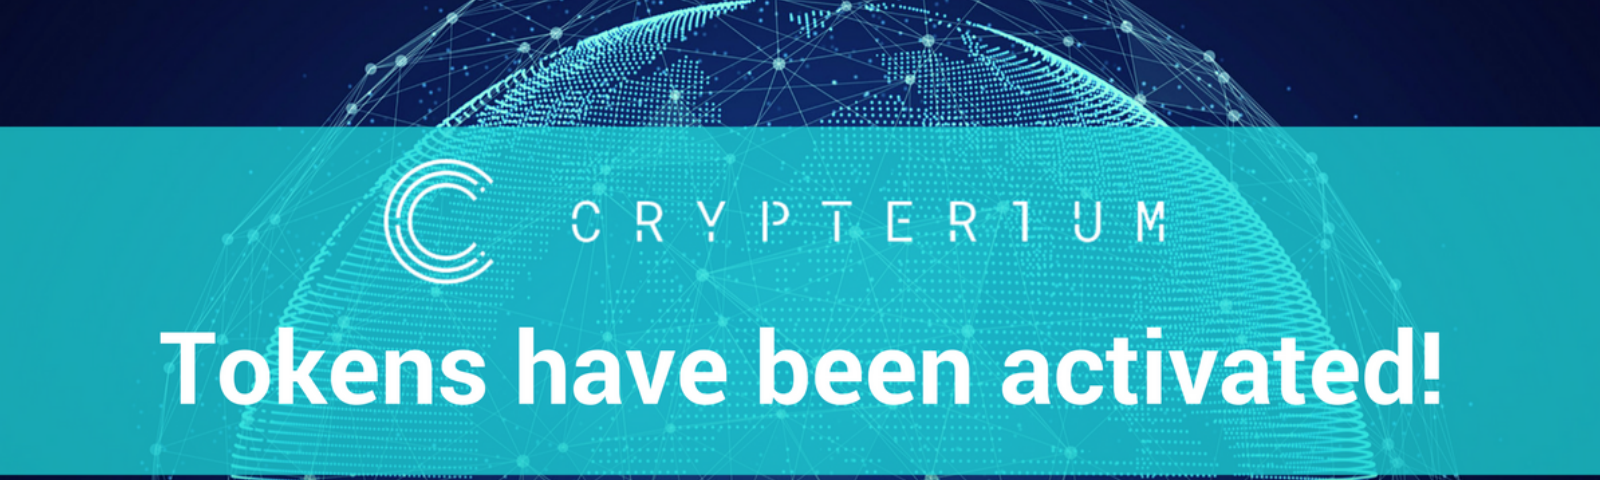 Crypterium News: token activation and new details on token withdrawal